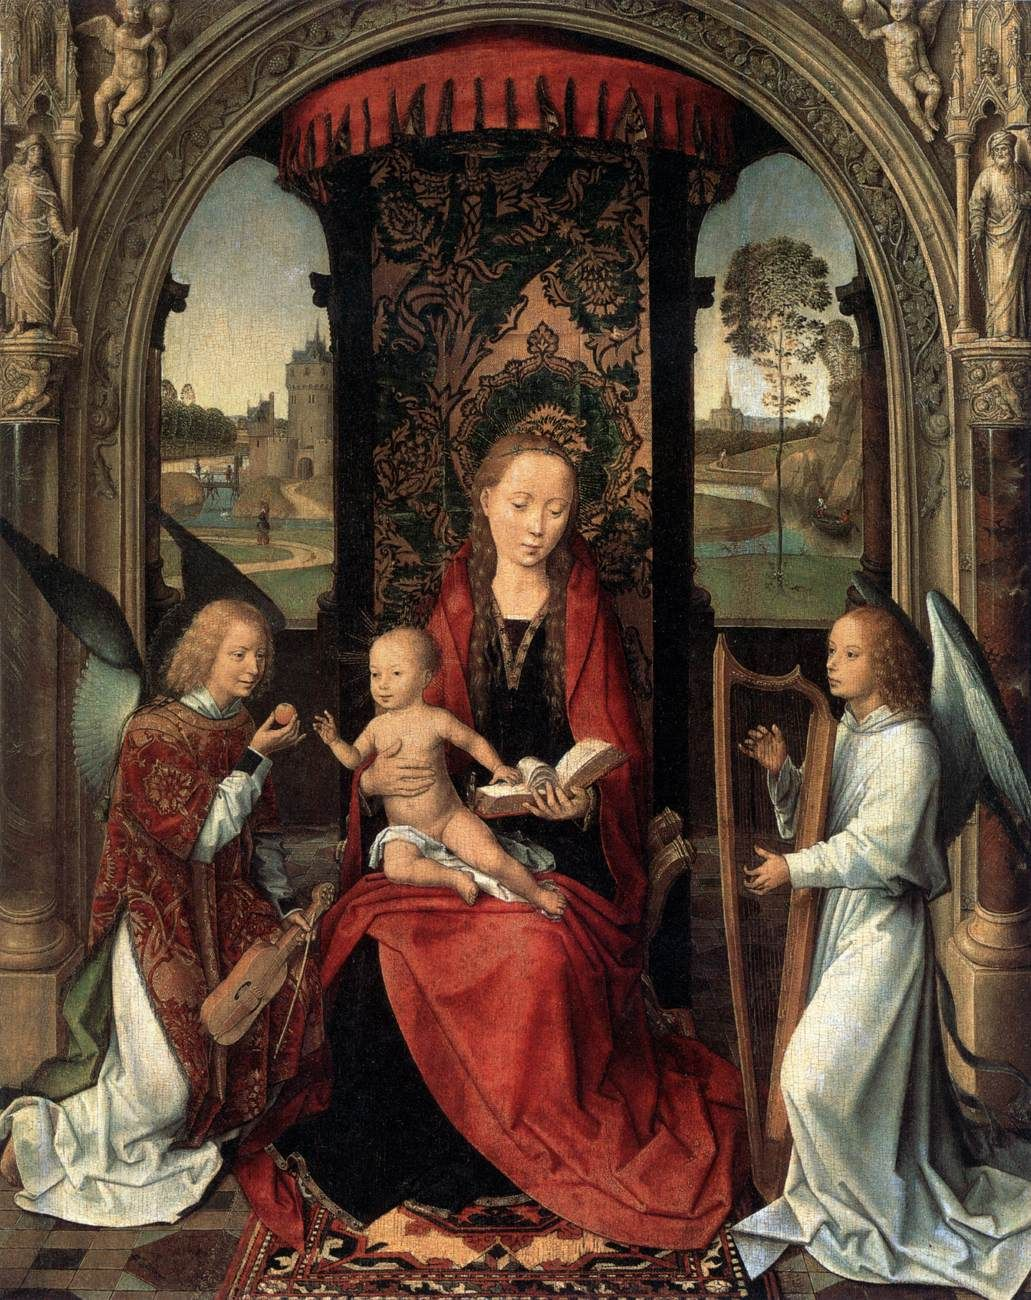 an analysis of virgin and child Known also as the madonna of the book, this painting represents the virgin and  child in a domestic setting, intent on reading a volume, perhaps a book of h.